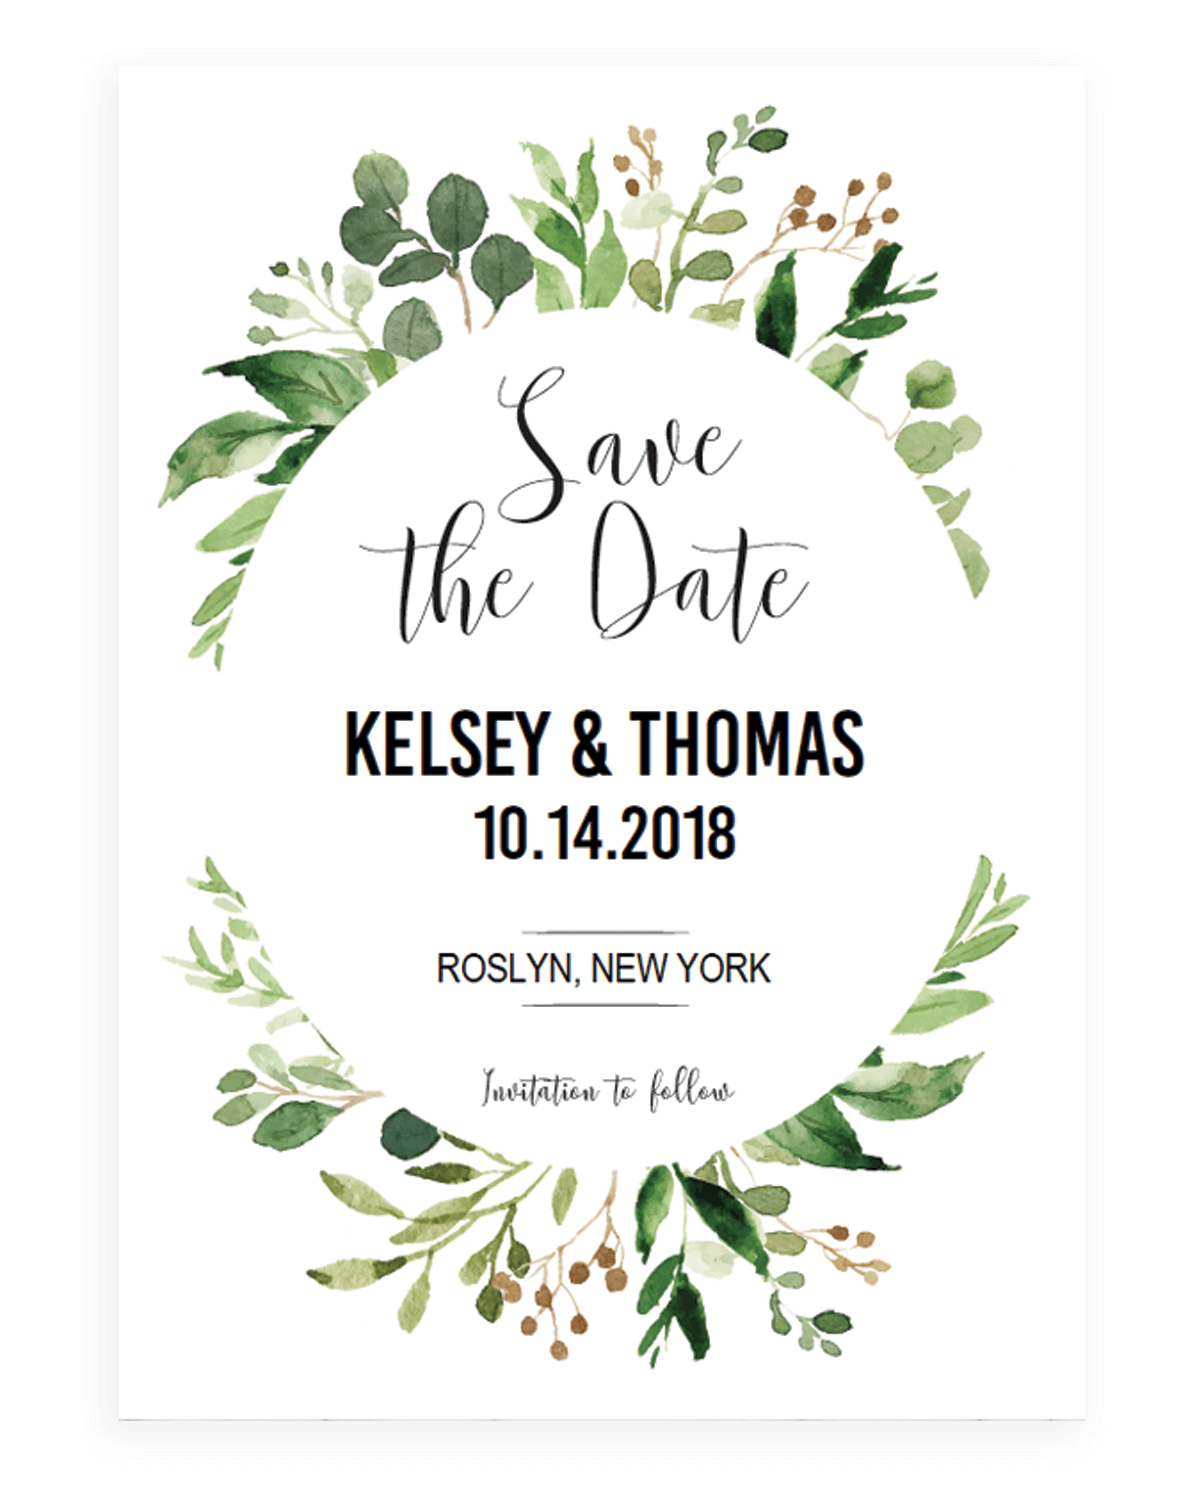 Wedding invitation clipart free download picture black and white stock Free wedding invitation printables clipart images gallery ... picture black and white stock